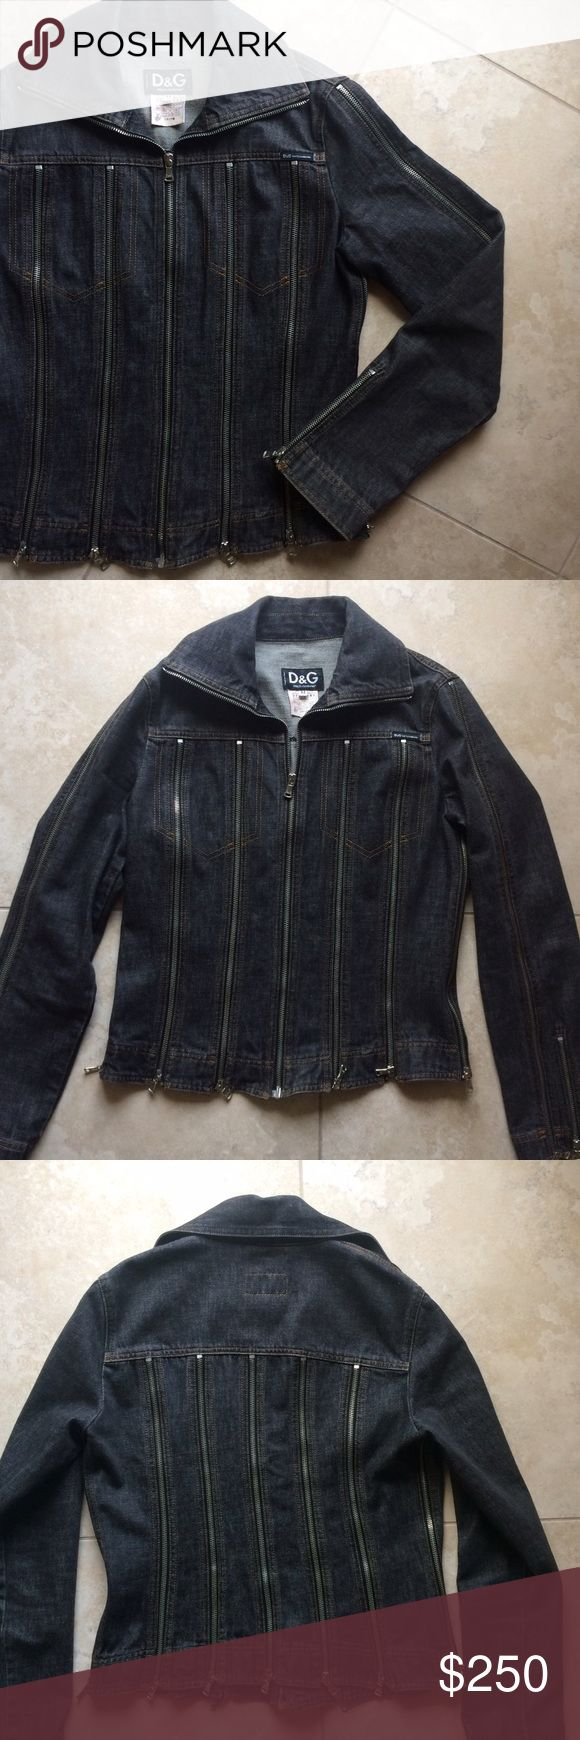 "Dolce and Gabbana multi-zip denim biker jacket This is an incredibly rare one of a kind piece. Guaranteed authentic. This is vintage (from around the late 1980s). Dark faded black denim 100% cotton, with numerous silver metal zipper all around the jacket and up the sleeves. Pics don't do this justice. Can be worn with the zippers zipped up or unzipped for a more edgy look. Zip front. Has a biker/moto jacket look. Literally no rush to sell bc I kinda wanna keep it. Length 24"" from shoulder…"